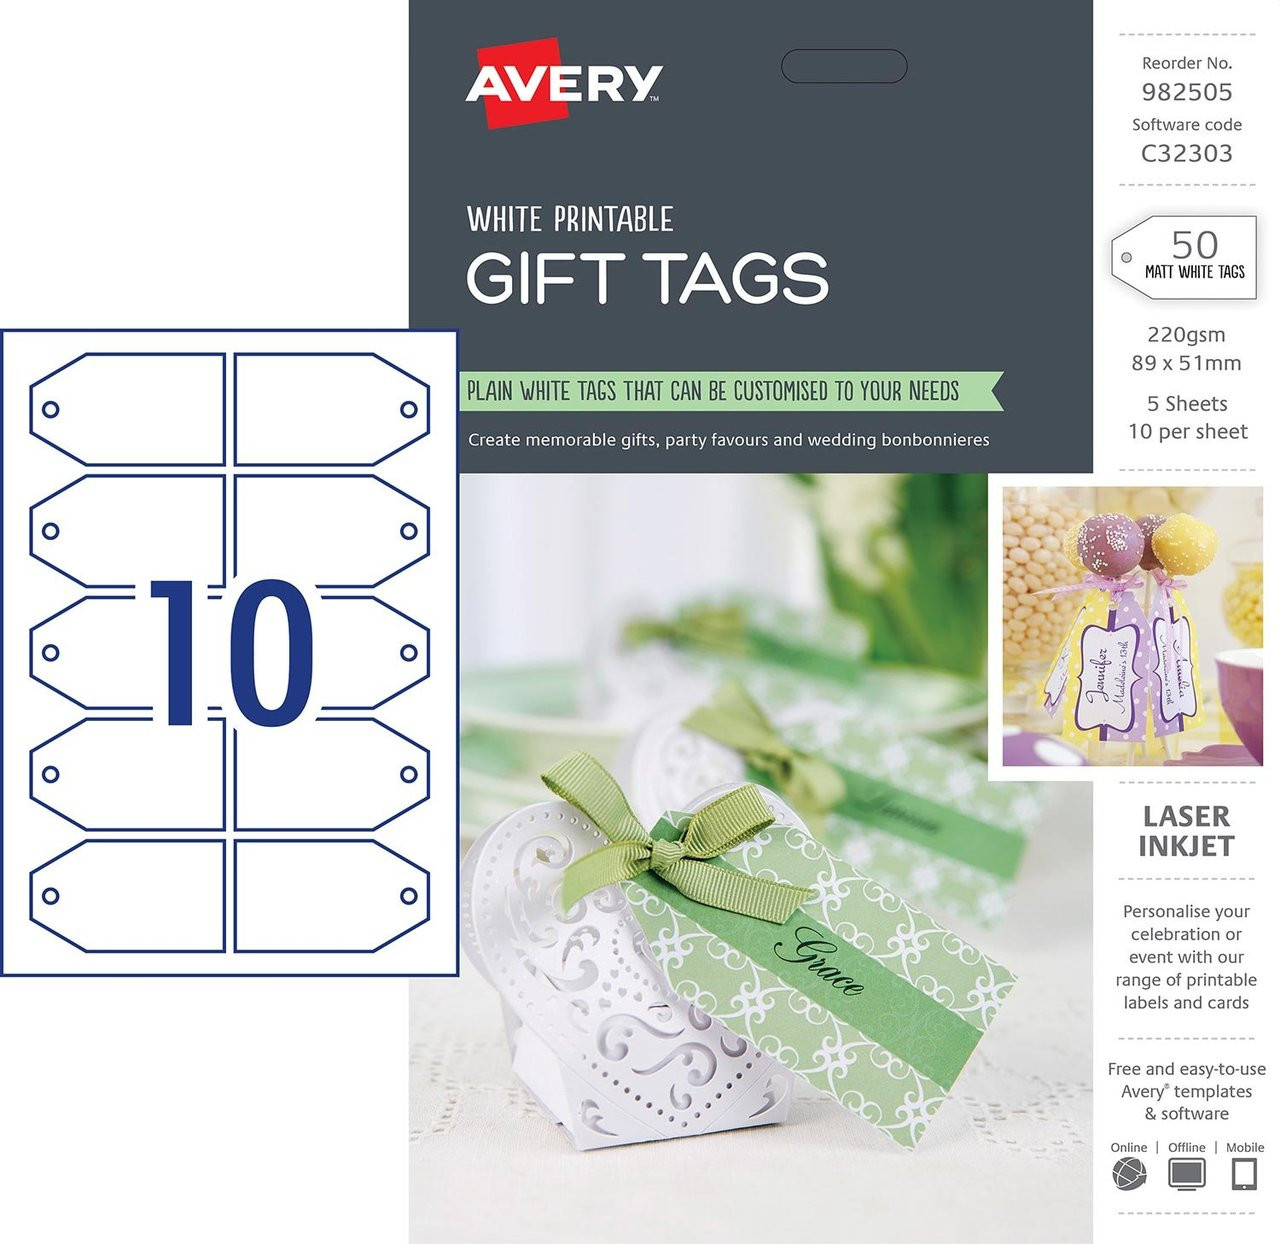 image relating to Avery Printable Tags called AVERY 982505 Present TAGS, C32303, 50/PACK, 89 X 51MM 10UP